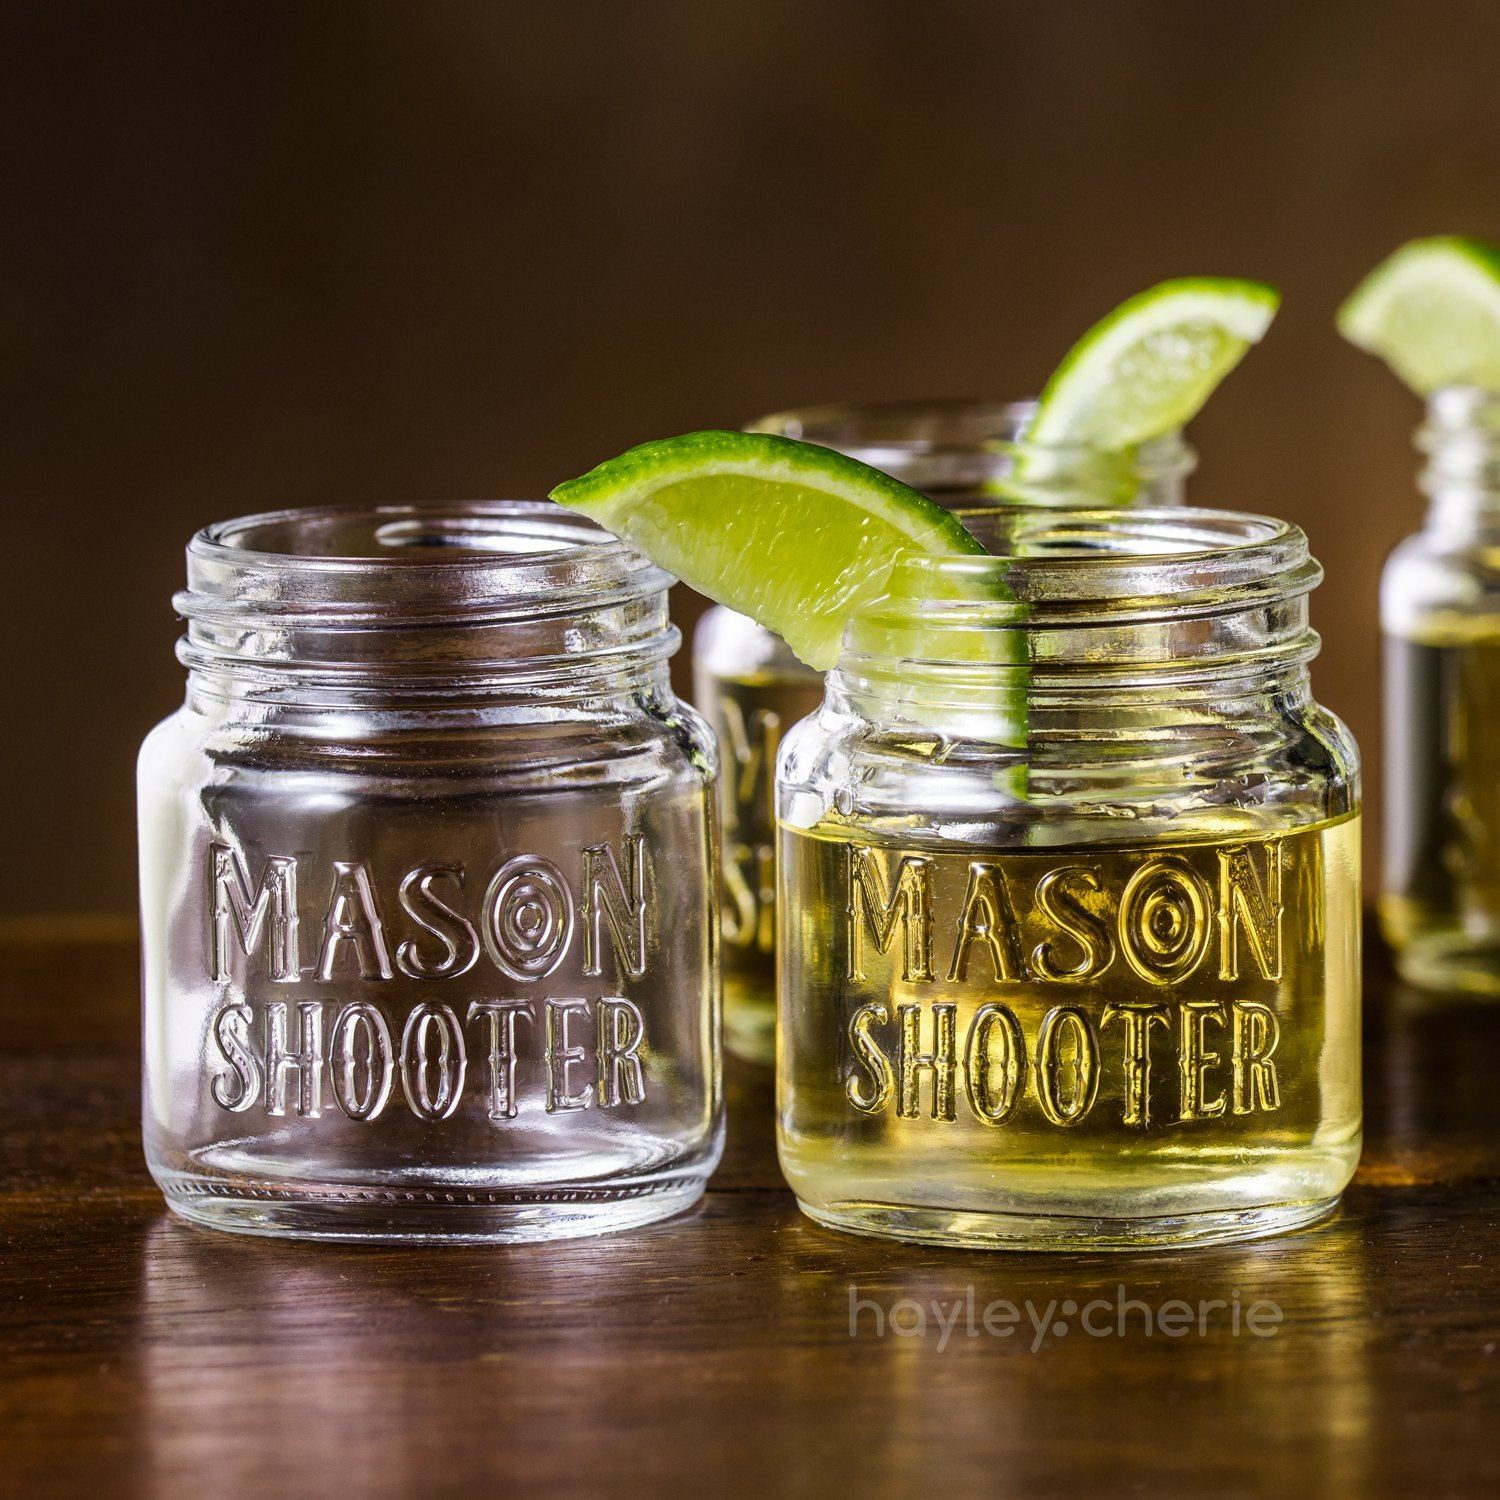 Set of 8 Hayley Cherie Mason Jar Shot Glasses with Lids 2 Ounces HayleyCherie Mini Mason Shooter Glass